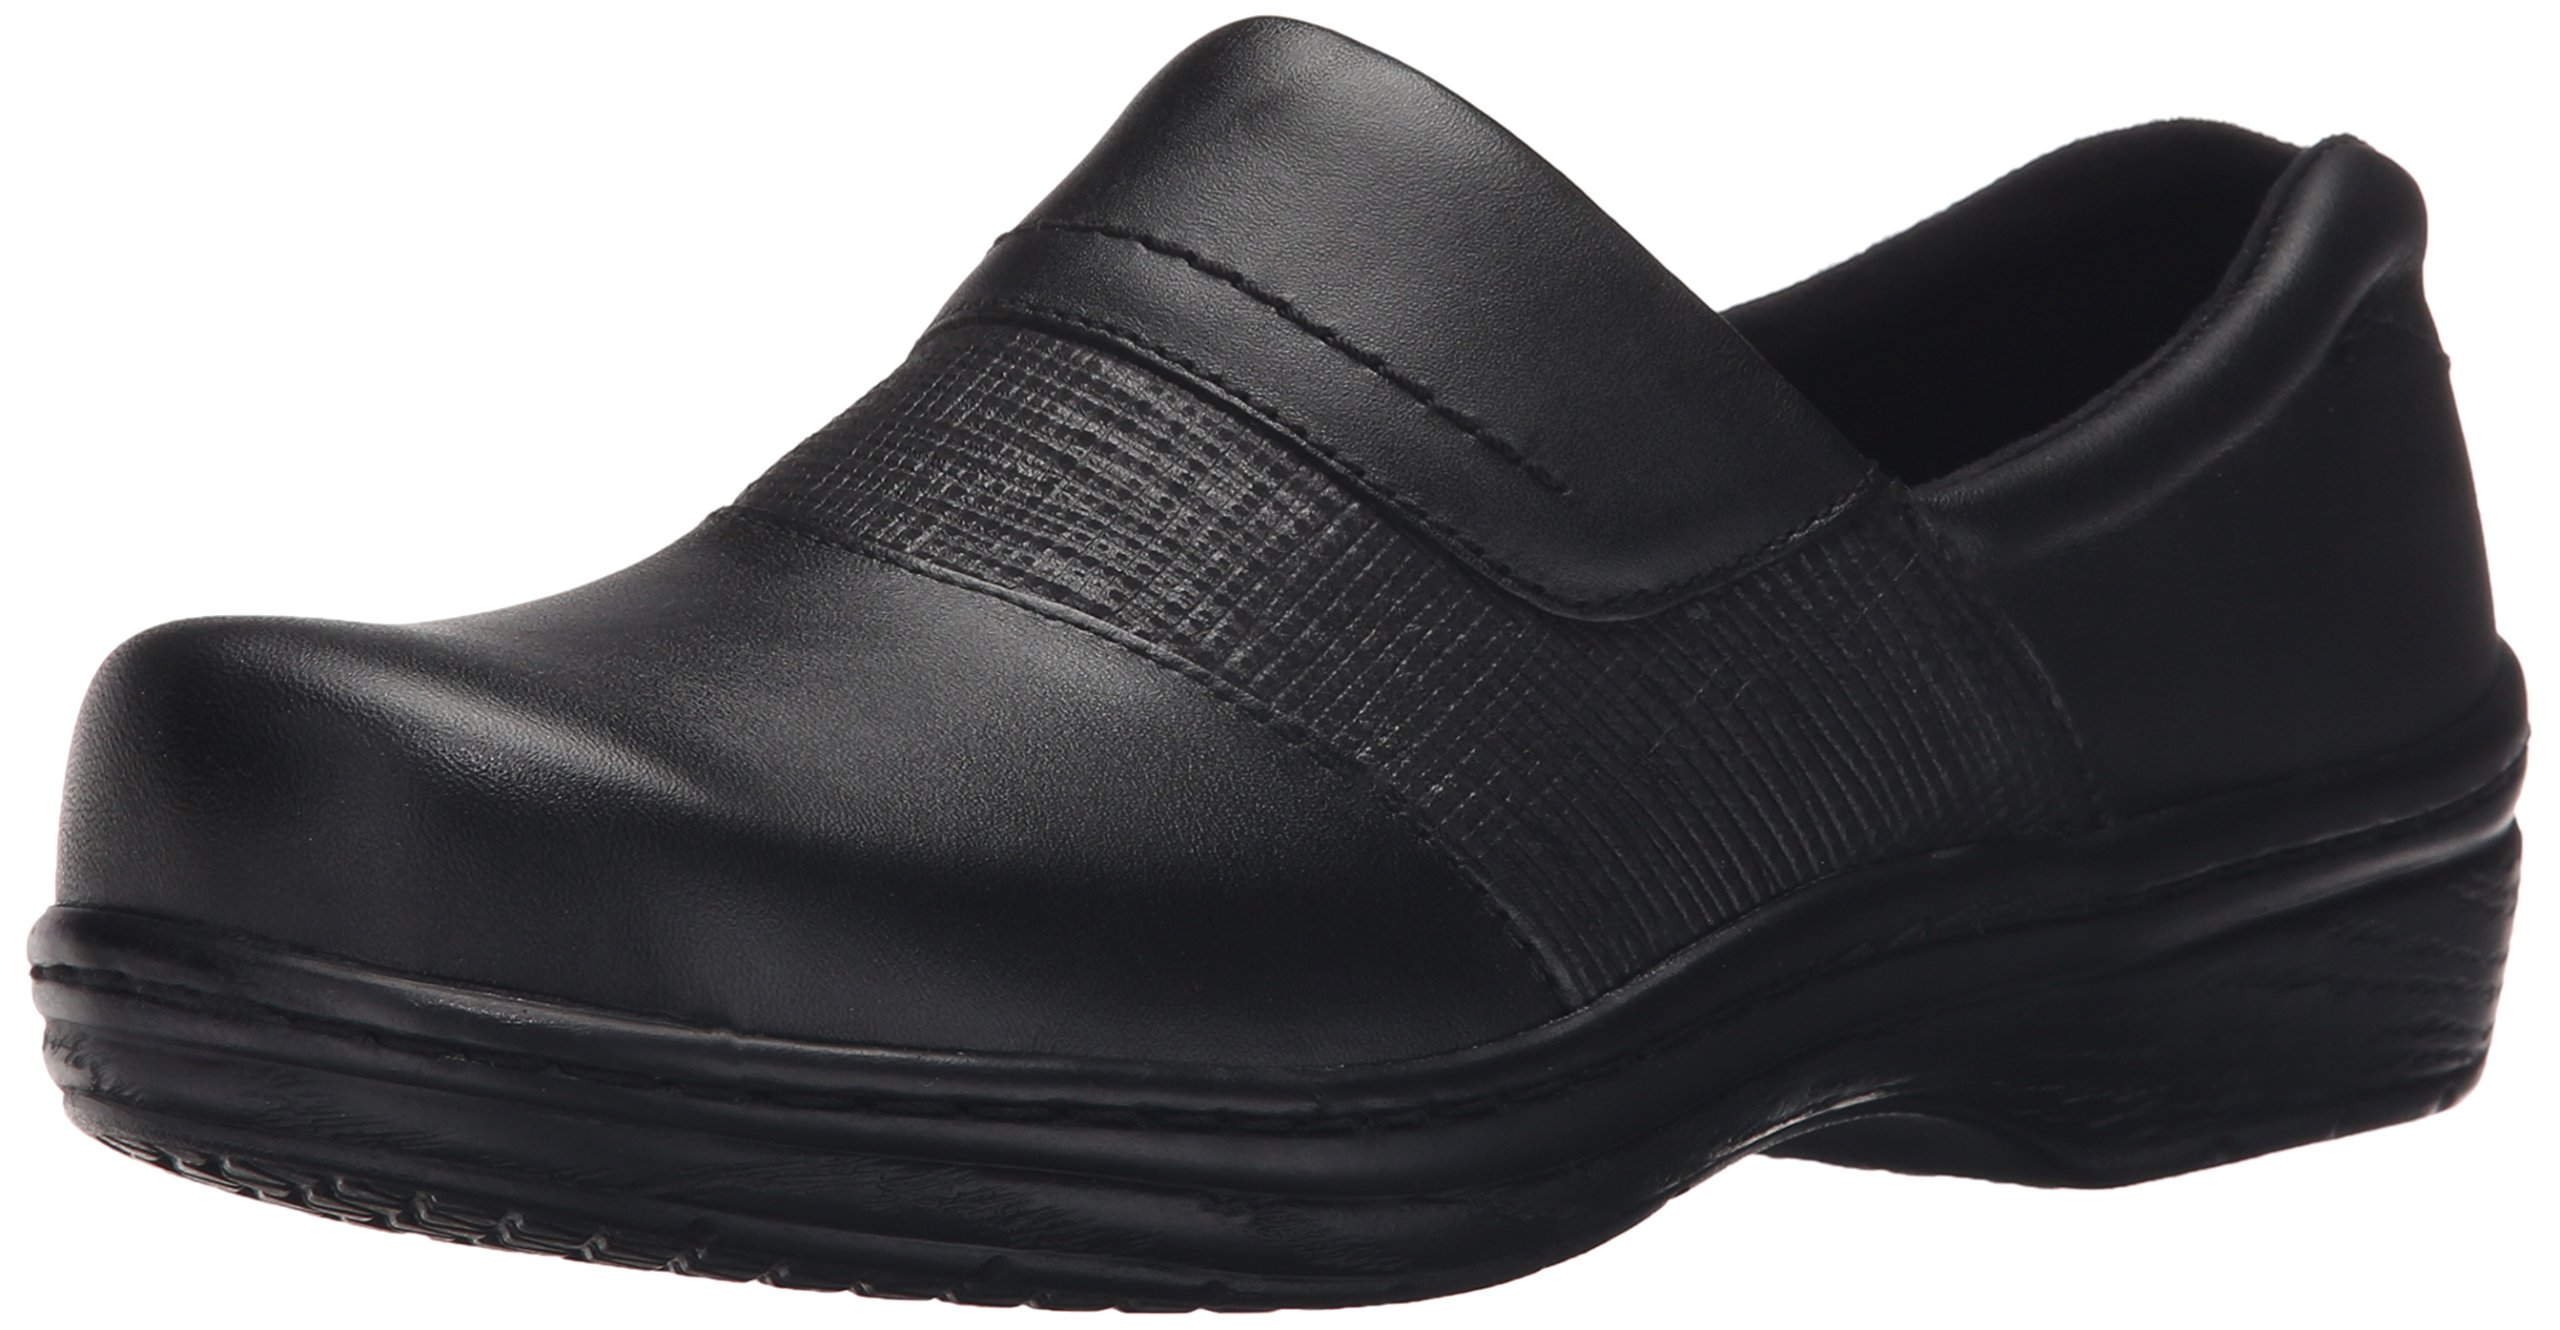 Klogs USA Women's Cardiff Mule, Black, 9 M US